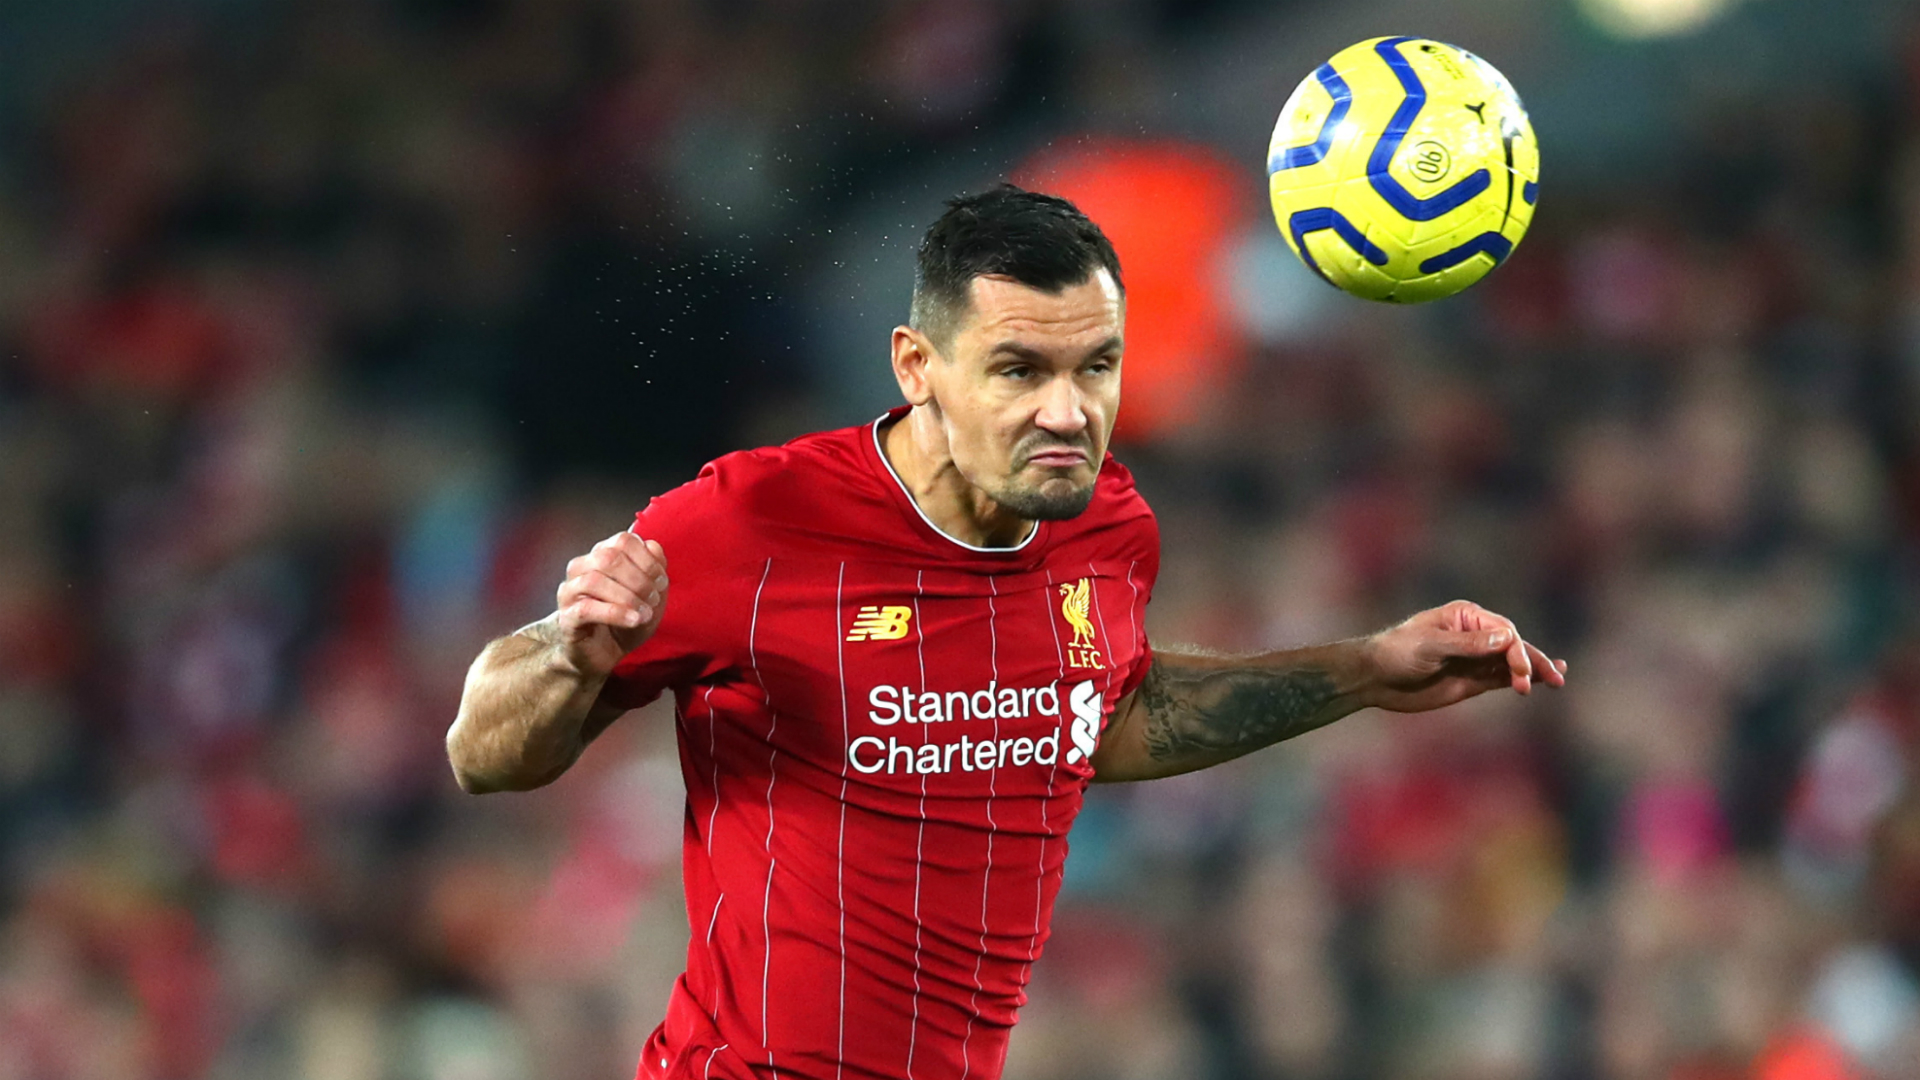 Lovren lifts leaders Liverpool as defender returns to training